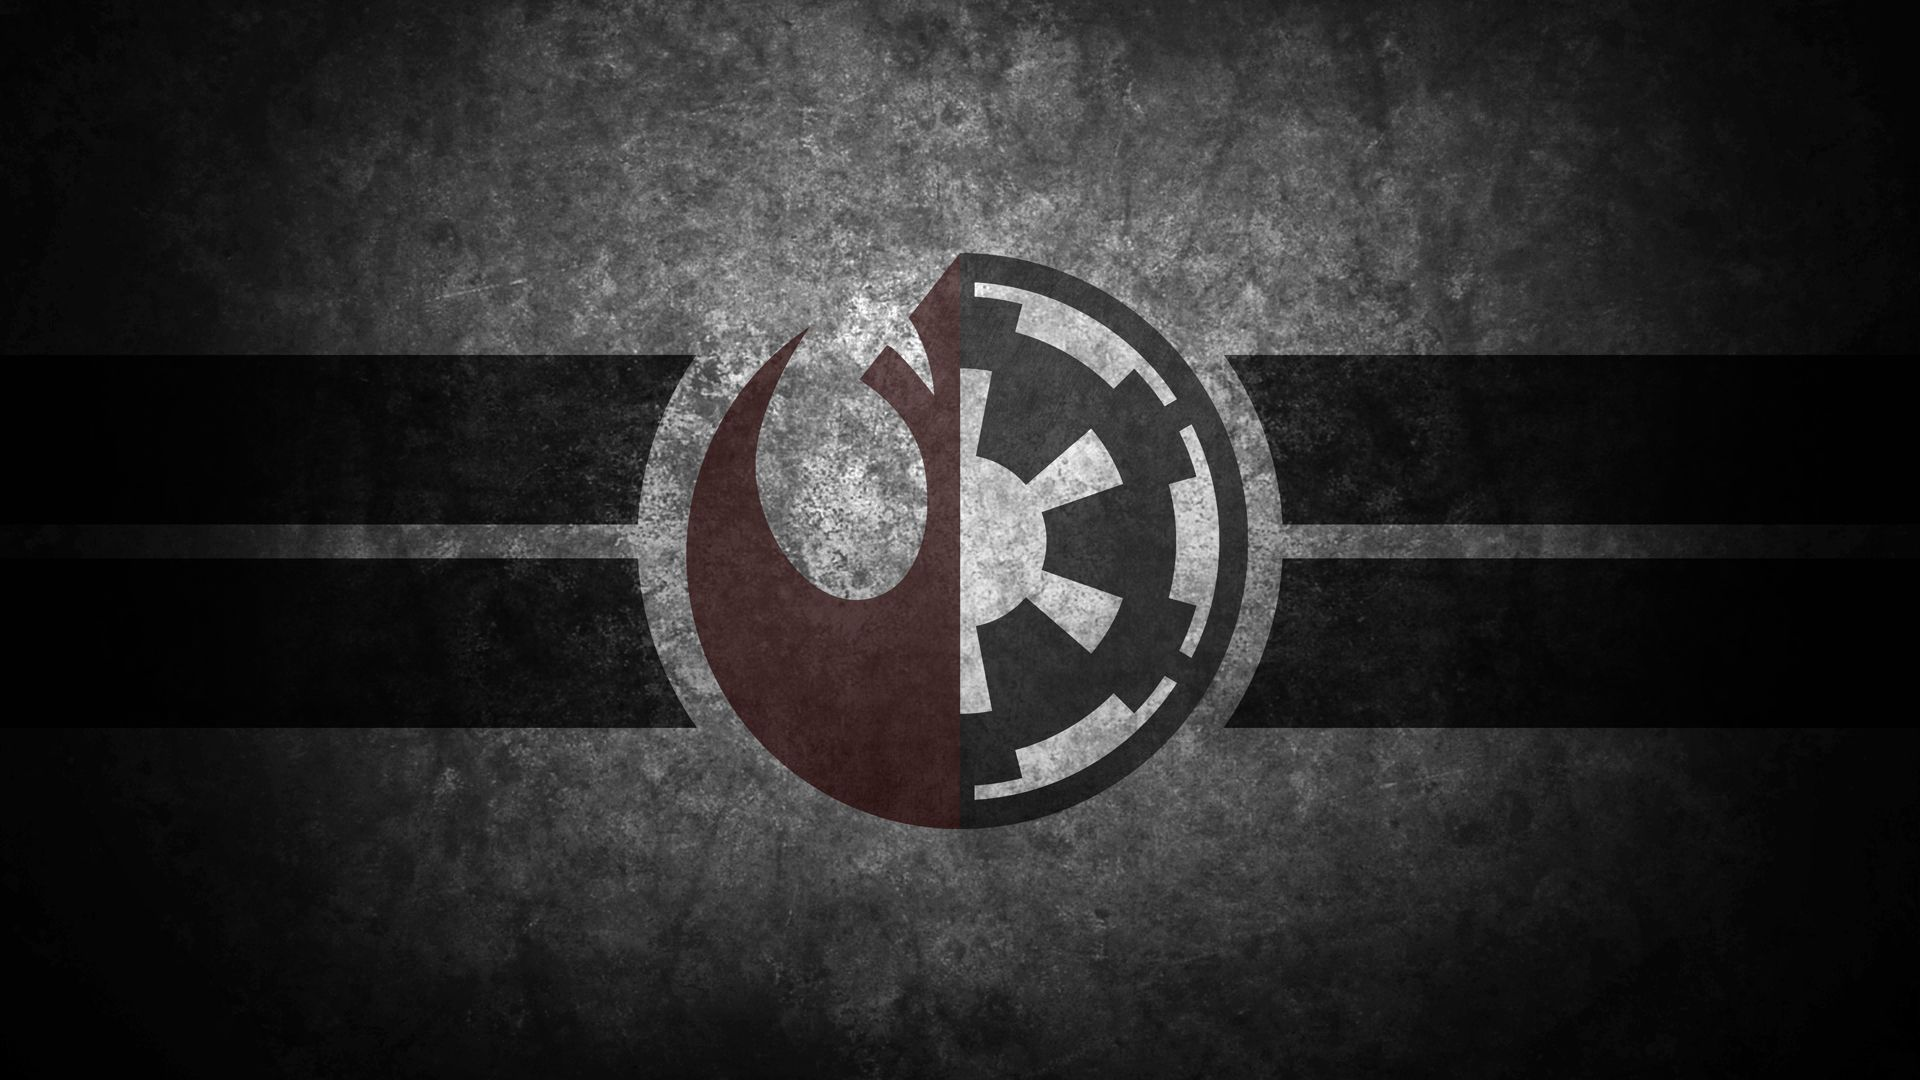 Star Wars Empire Wallpapers High Quality Star Wars Wallpaper Iphone Wallpaper Stars Empire Wallpaper